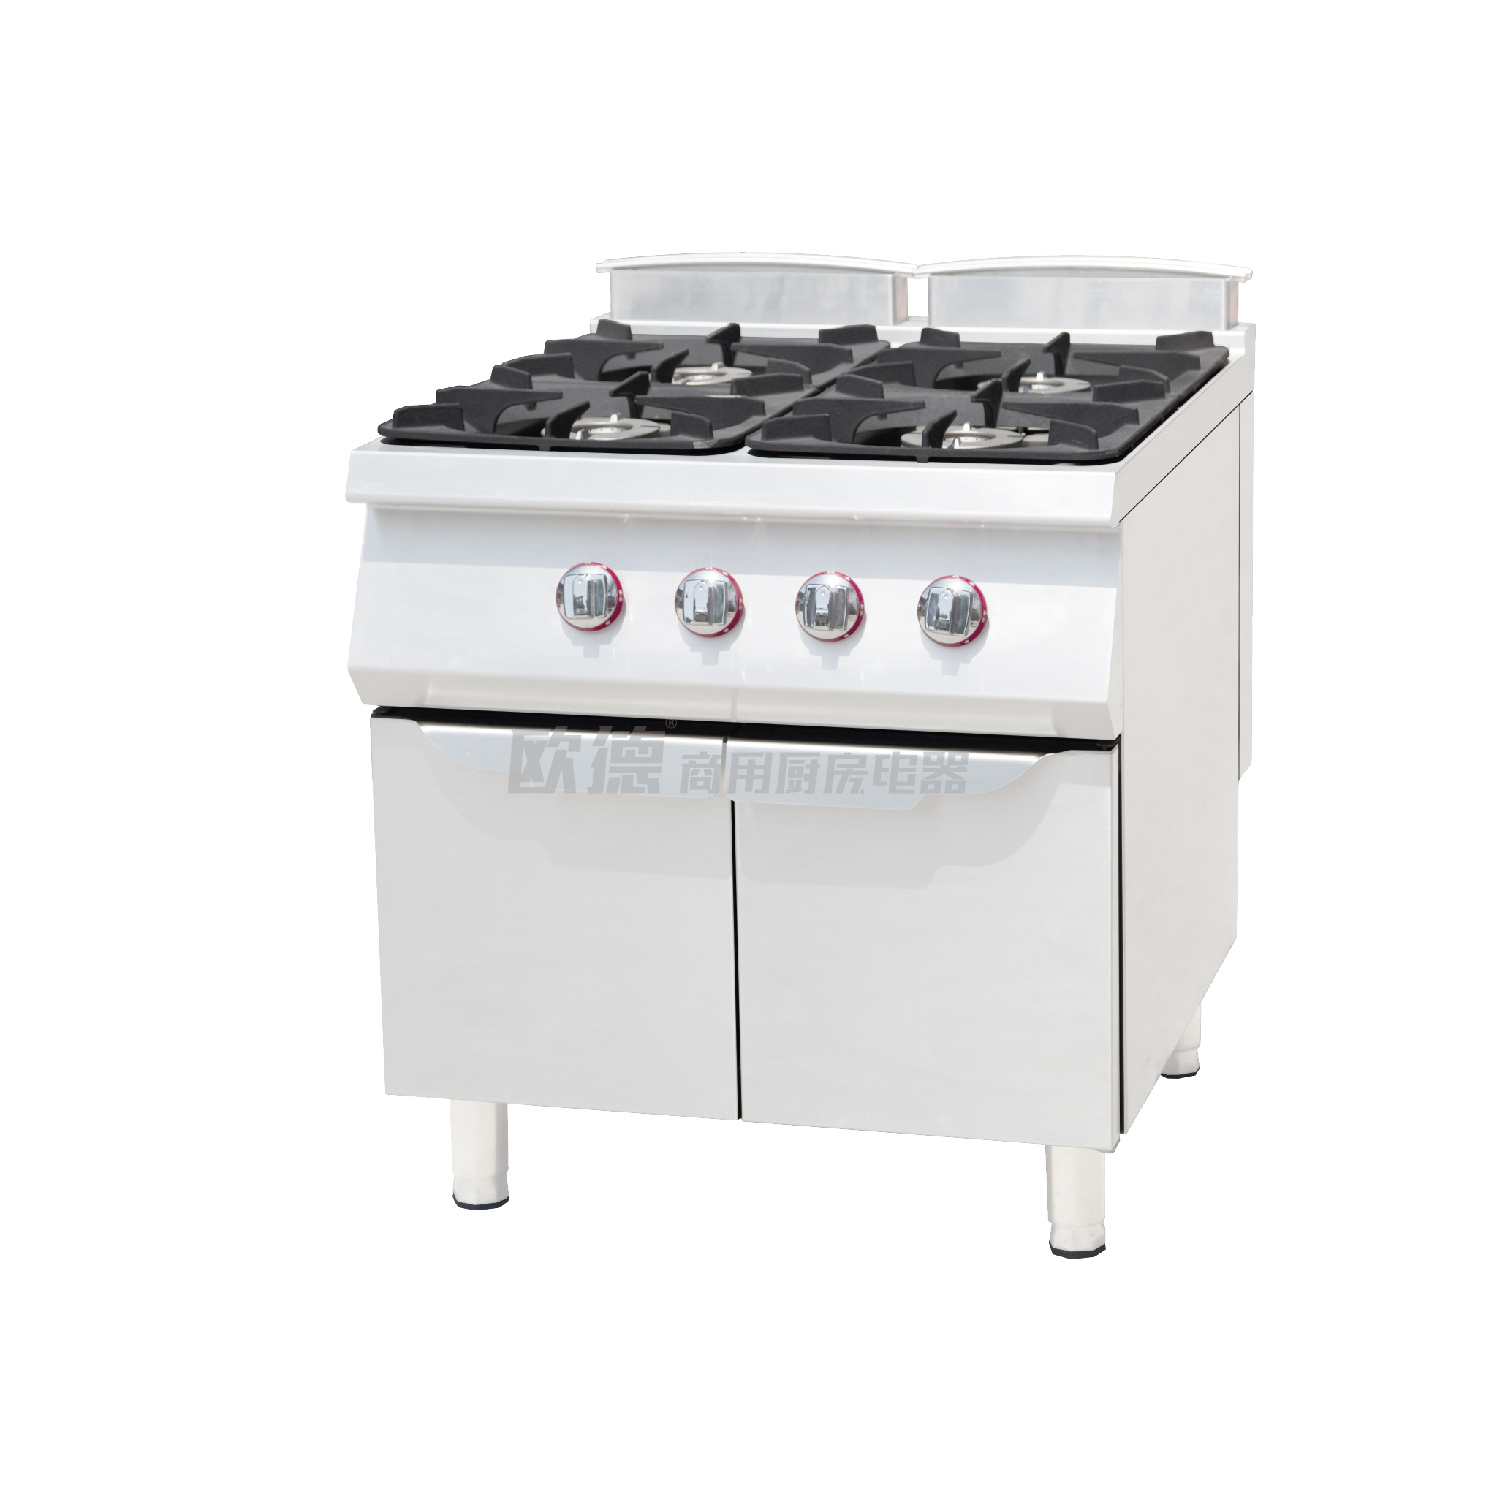 China Gas Range with 4-Burner & Oven, Industrial Gas Cooking Range ...